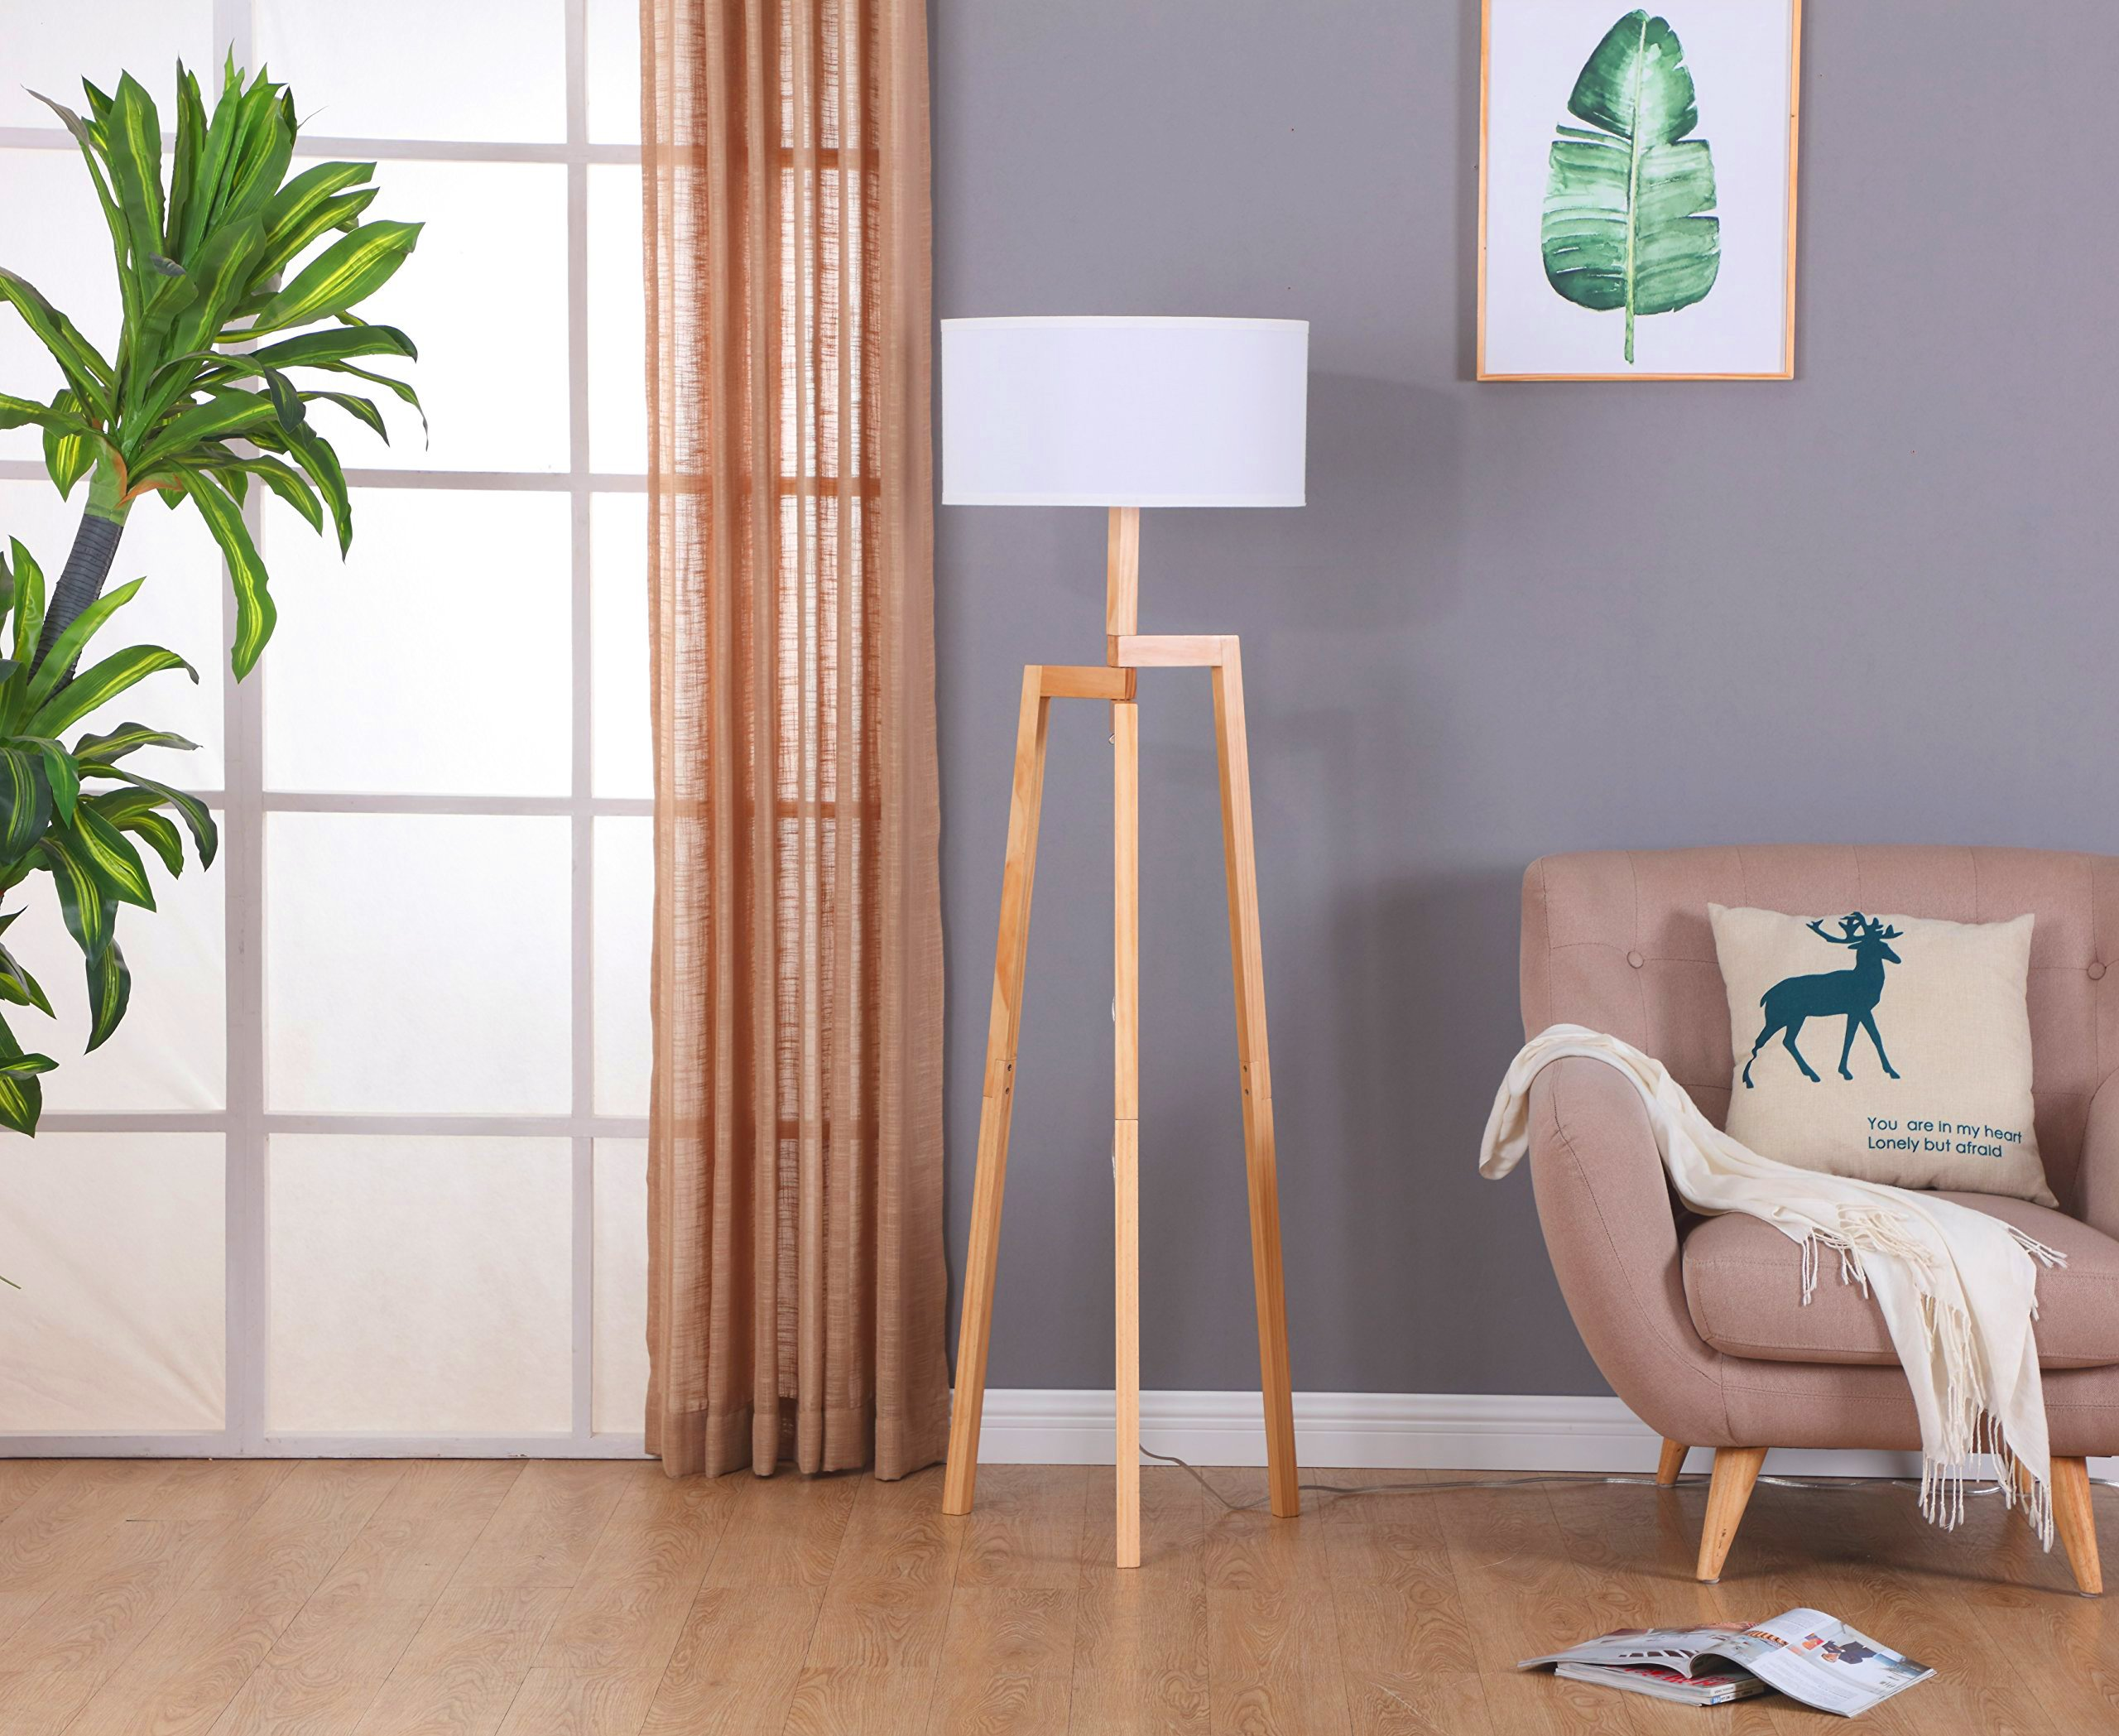 Brightech New Mia LED Tripod Floor Lamp– Modern Design Wood Mid Century Style Lighting for Contemporary Living or Family Rooms- Ambient Light Tall Standing Survey Lamp for Bedroom, Office- White Shade by Brightech (Image #8)